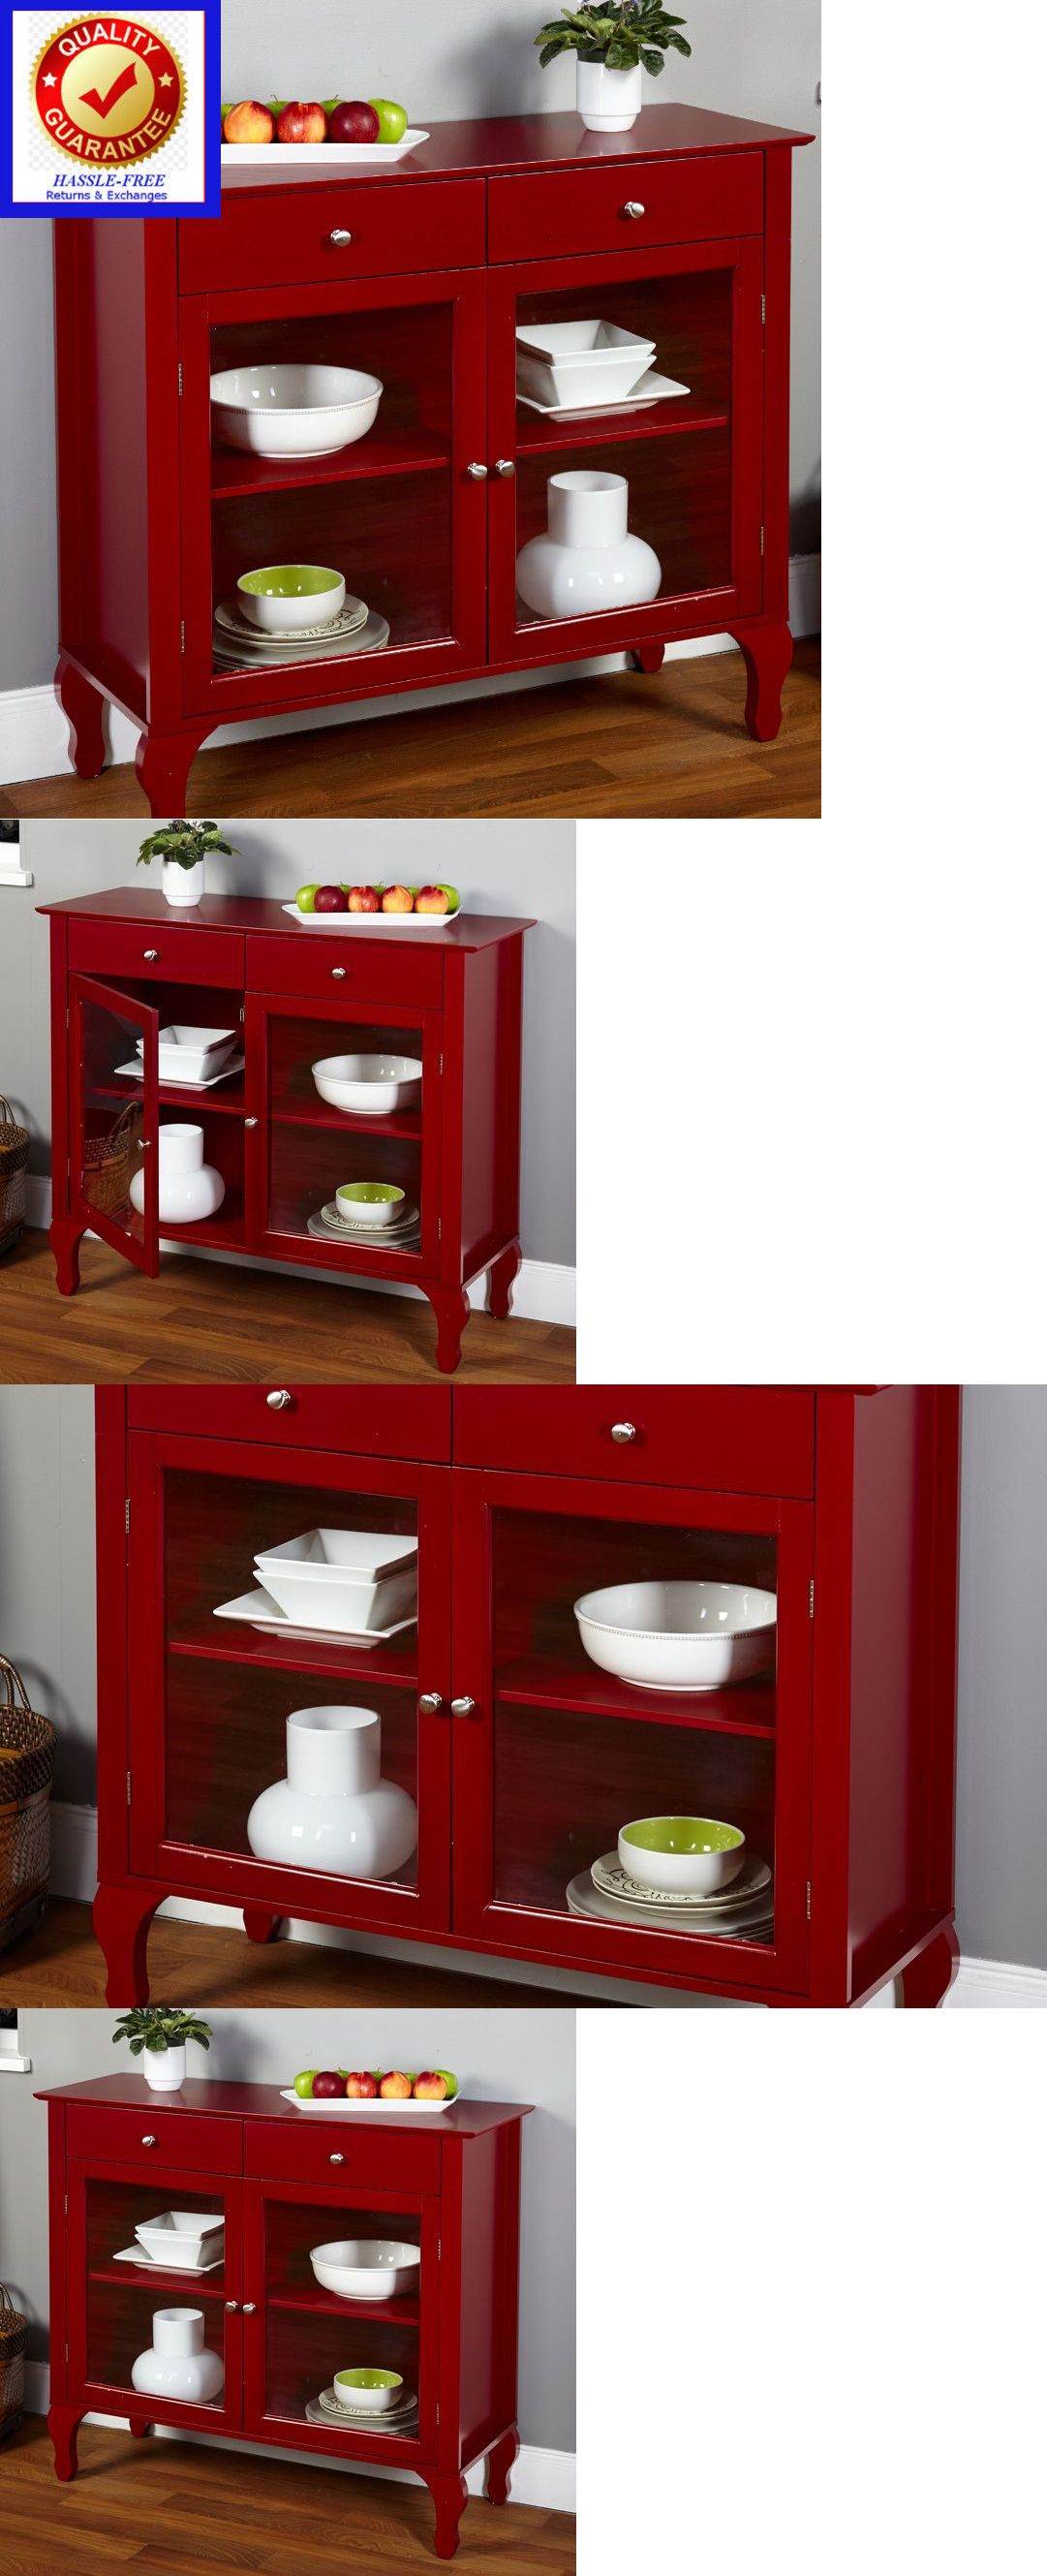 Sideboards and buffets 183322 colonial kitchen buffet table dining room china storage cabinet red